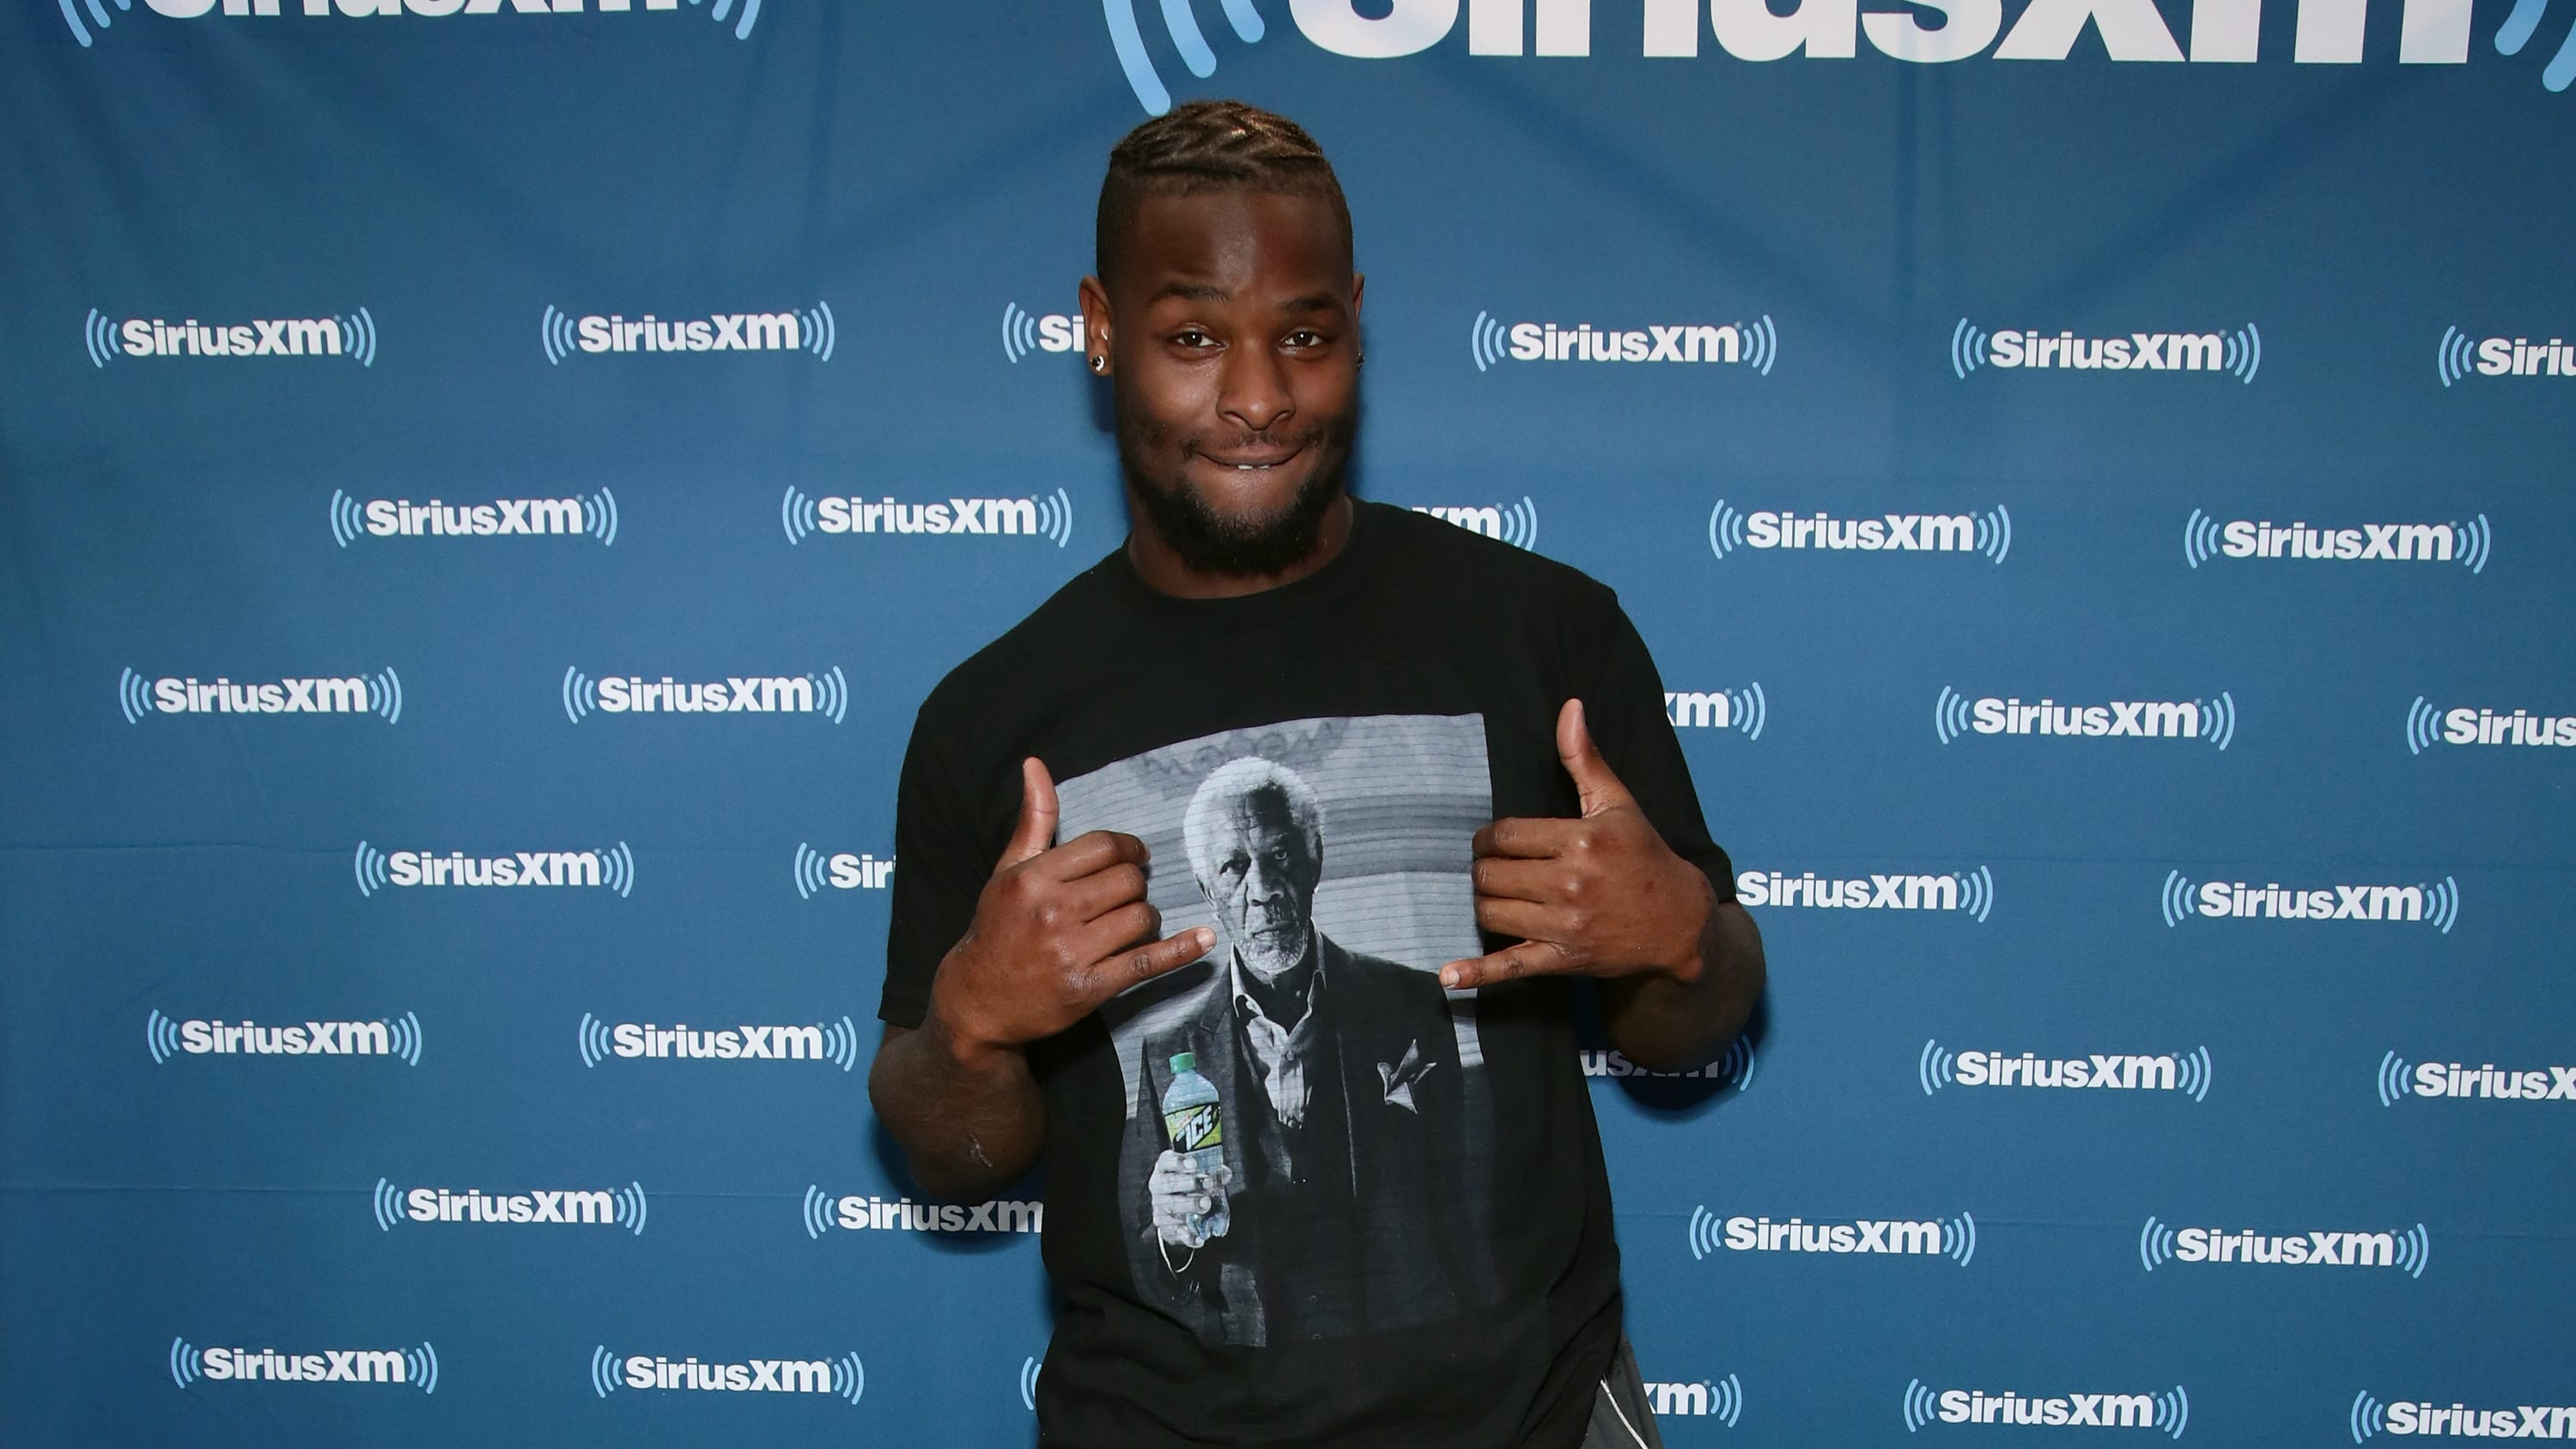 MINNEAPOLIS, MN - FEBRUARY 02:  Le'Veon Bell of the Pittsburgh Steelers attends SiriusXM at Super Bowl LII Radio Row at the Mall of America on February 2, 2018 in Bloomington, Minnesota.  (Photo by Cindy Ord/Getty Images for SiriusXM)